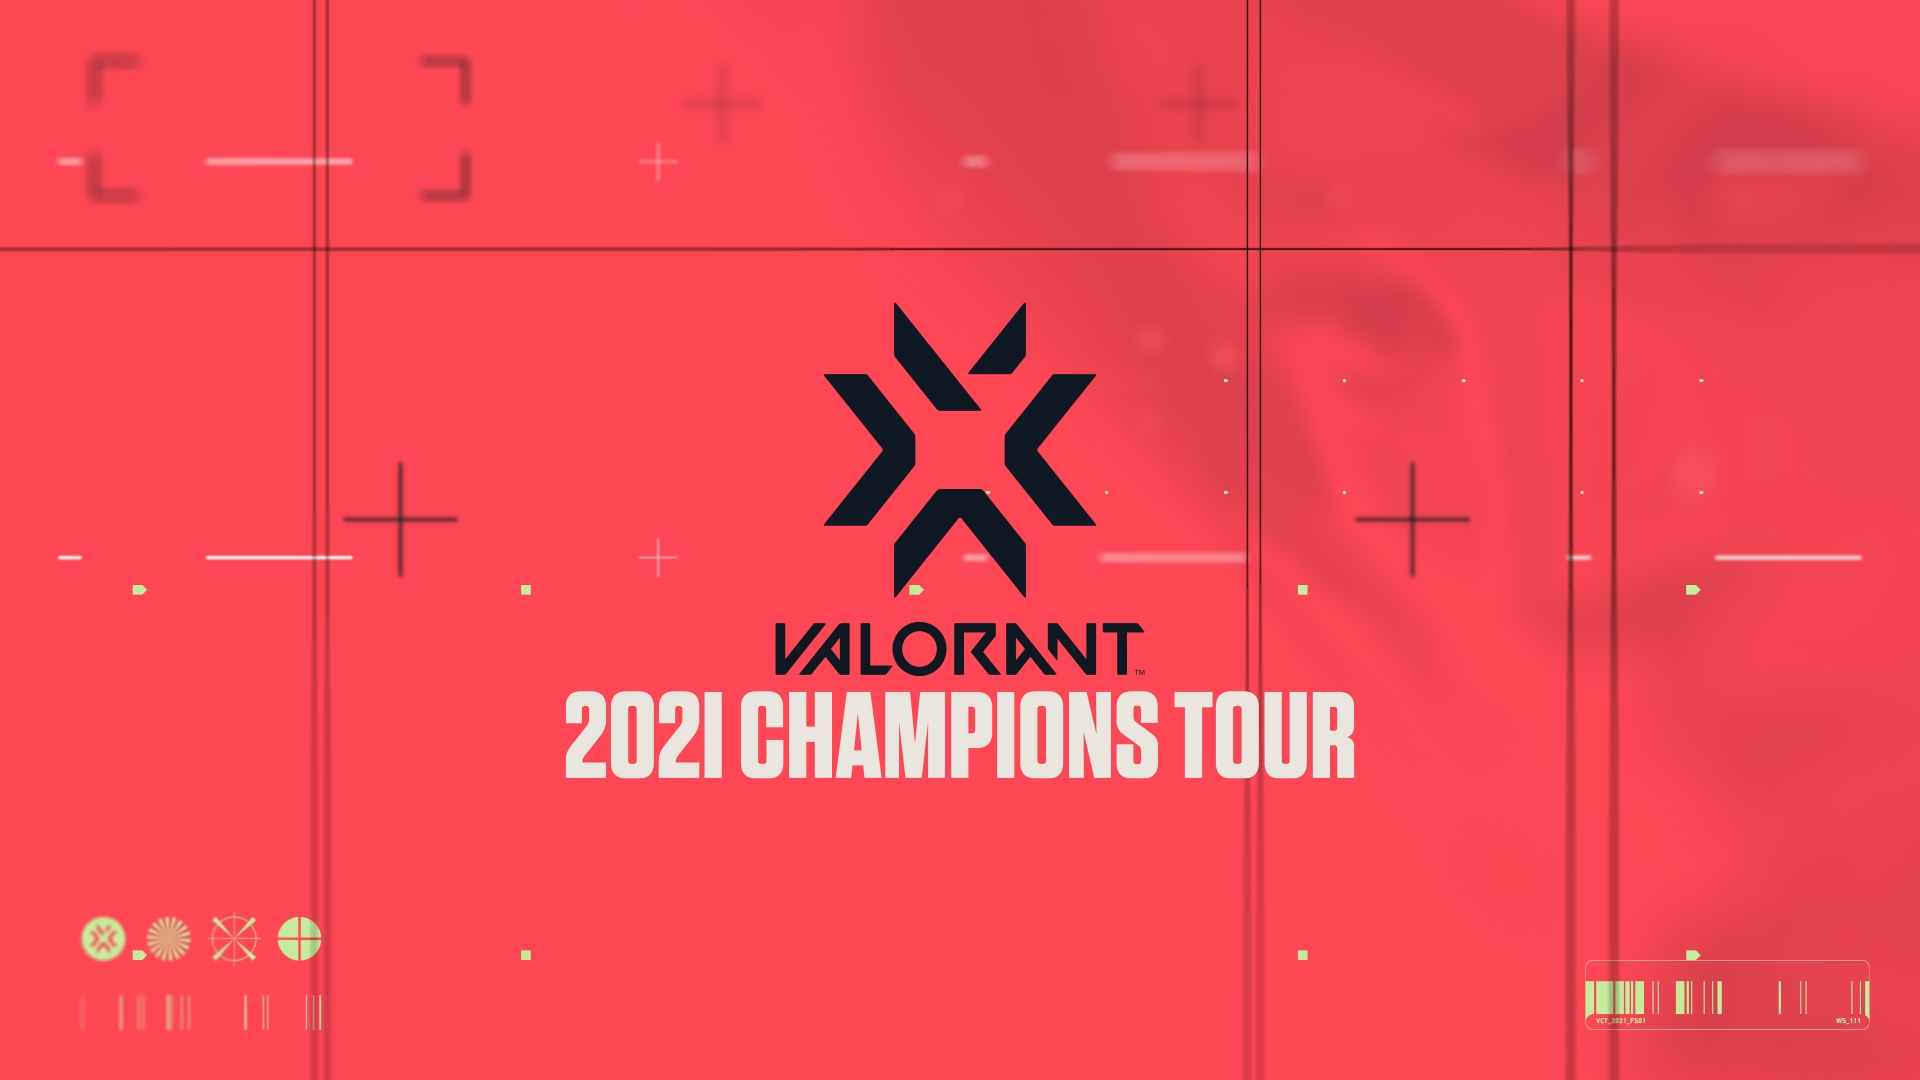 Indian Slot in Valorant Champions Tour 2021